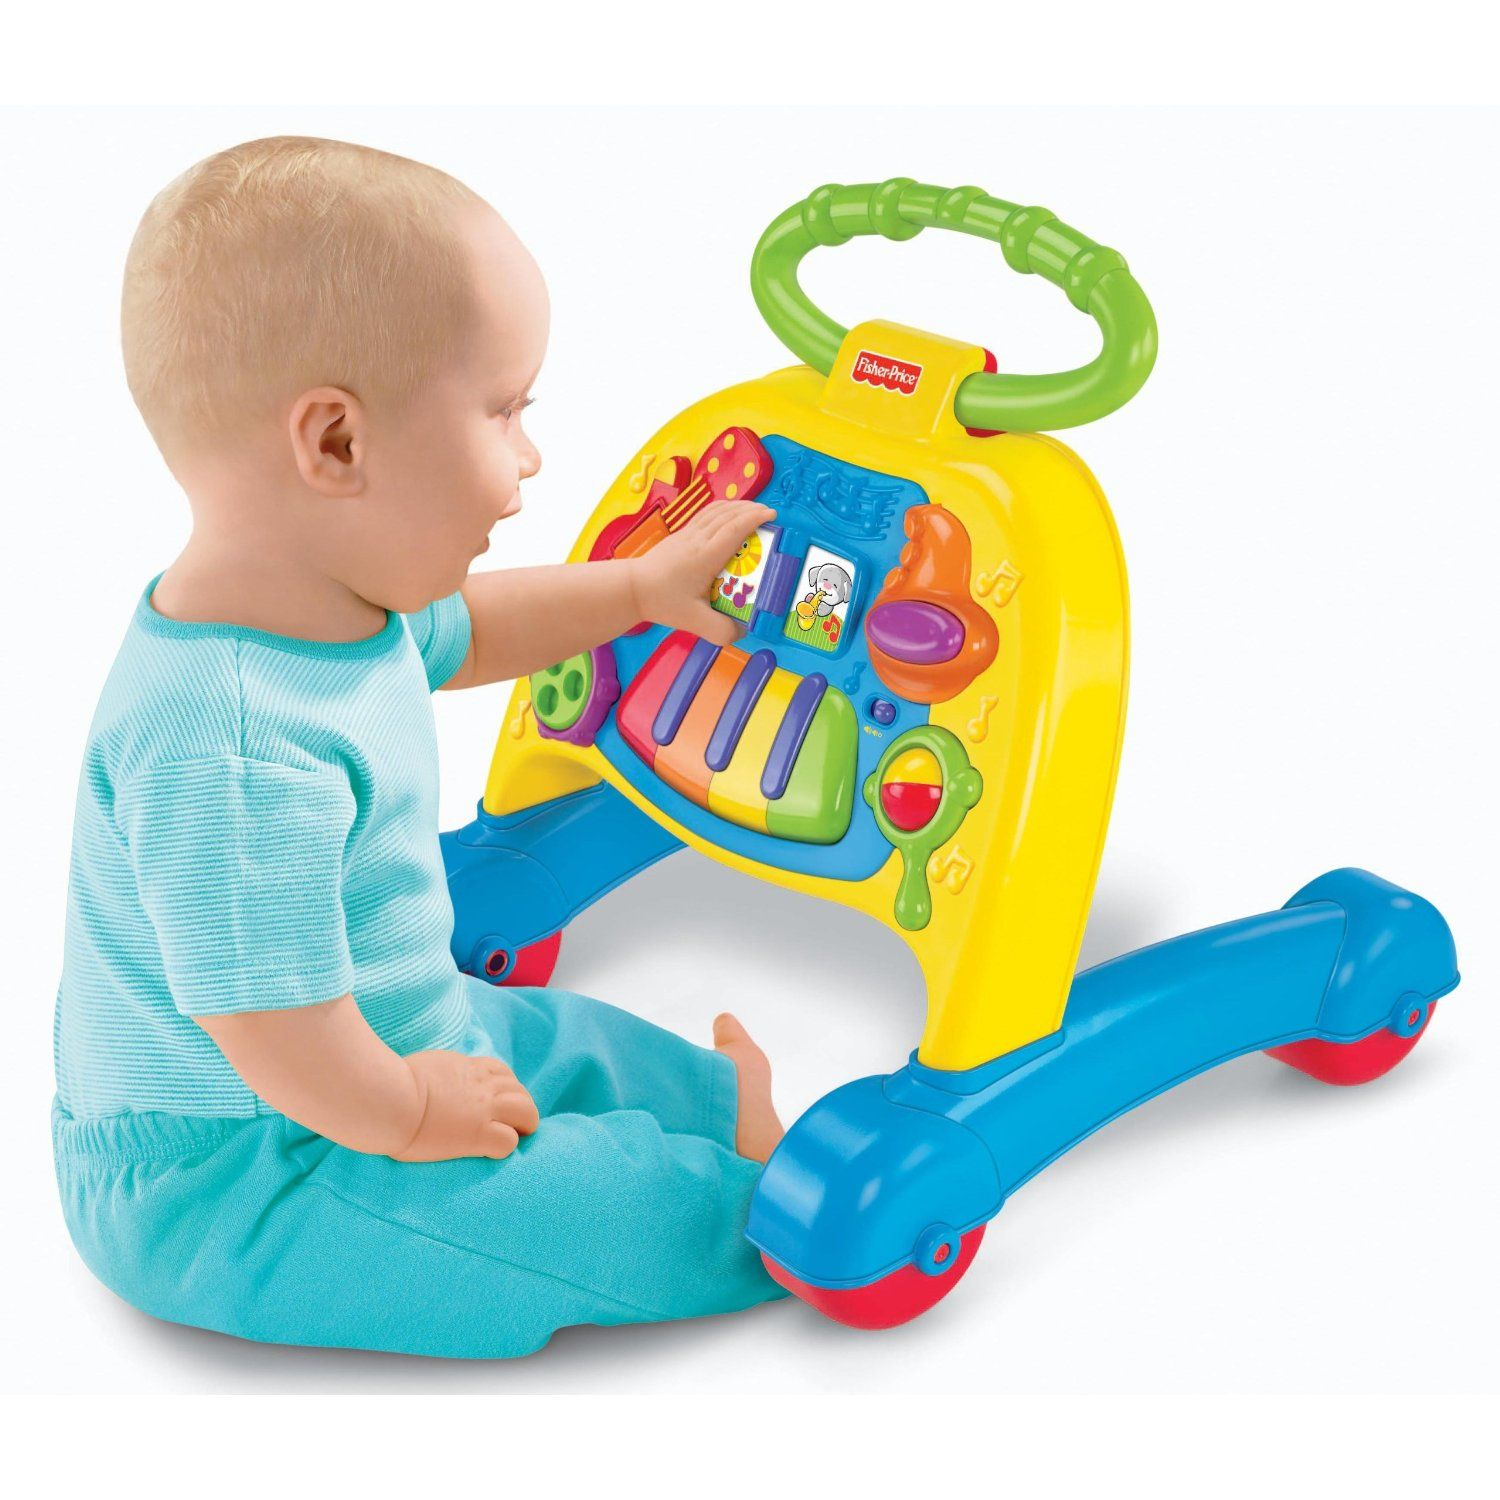 15 toys for baby s first year good list of toys that are mama and